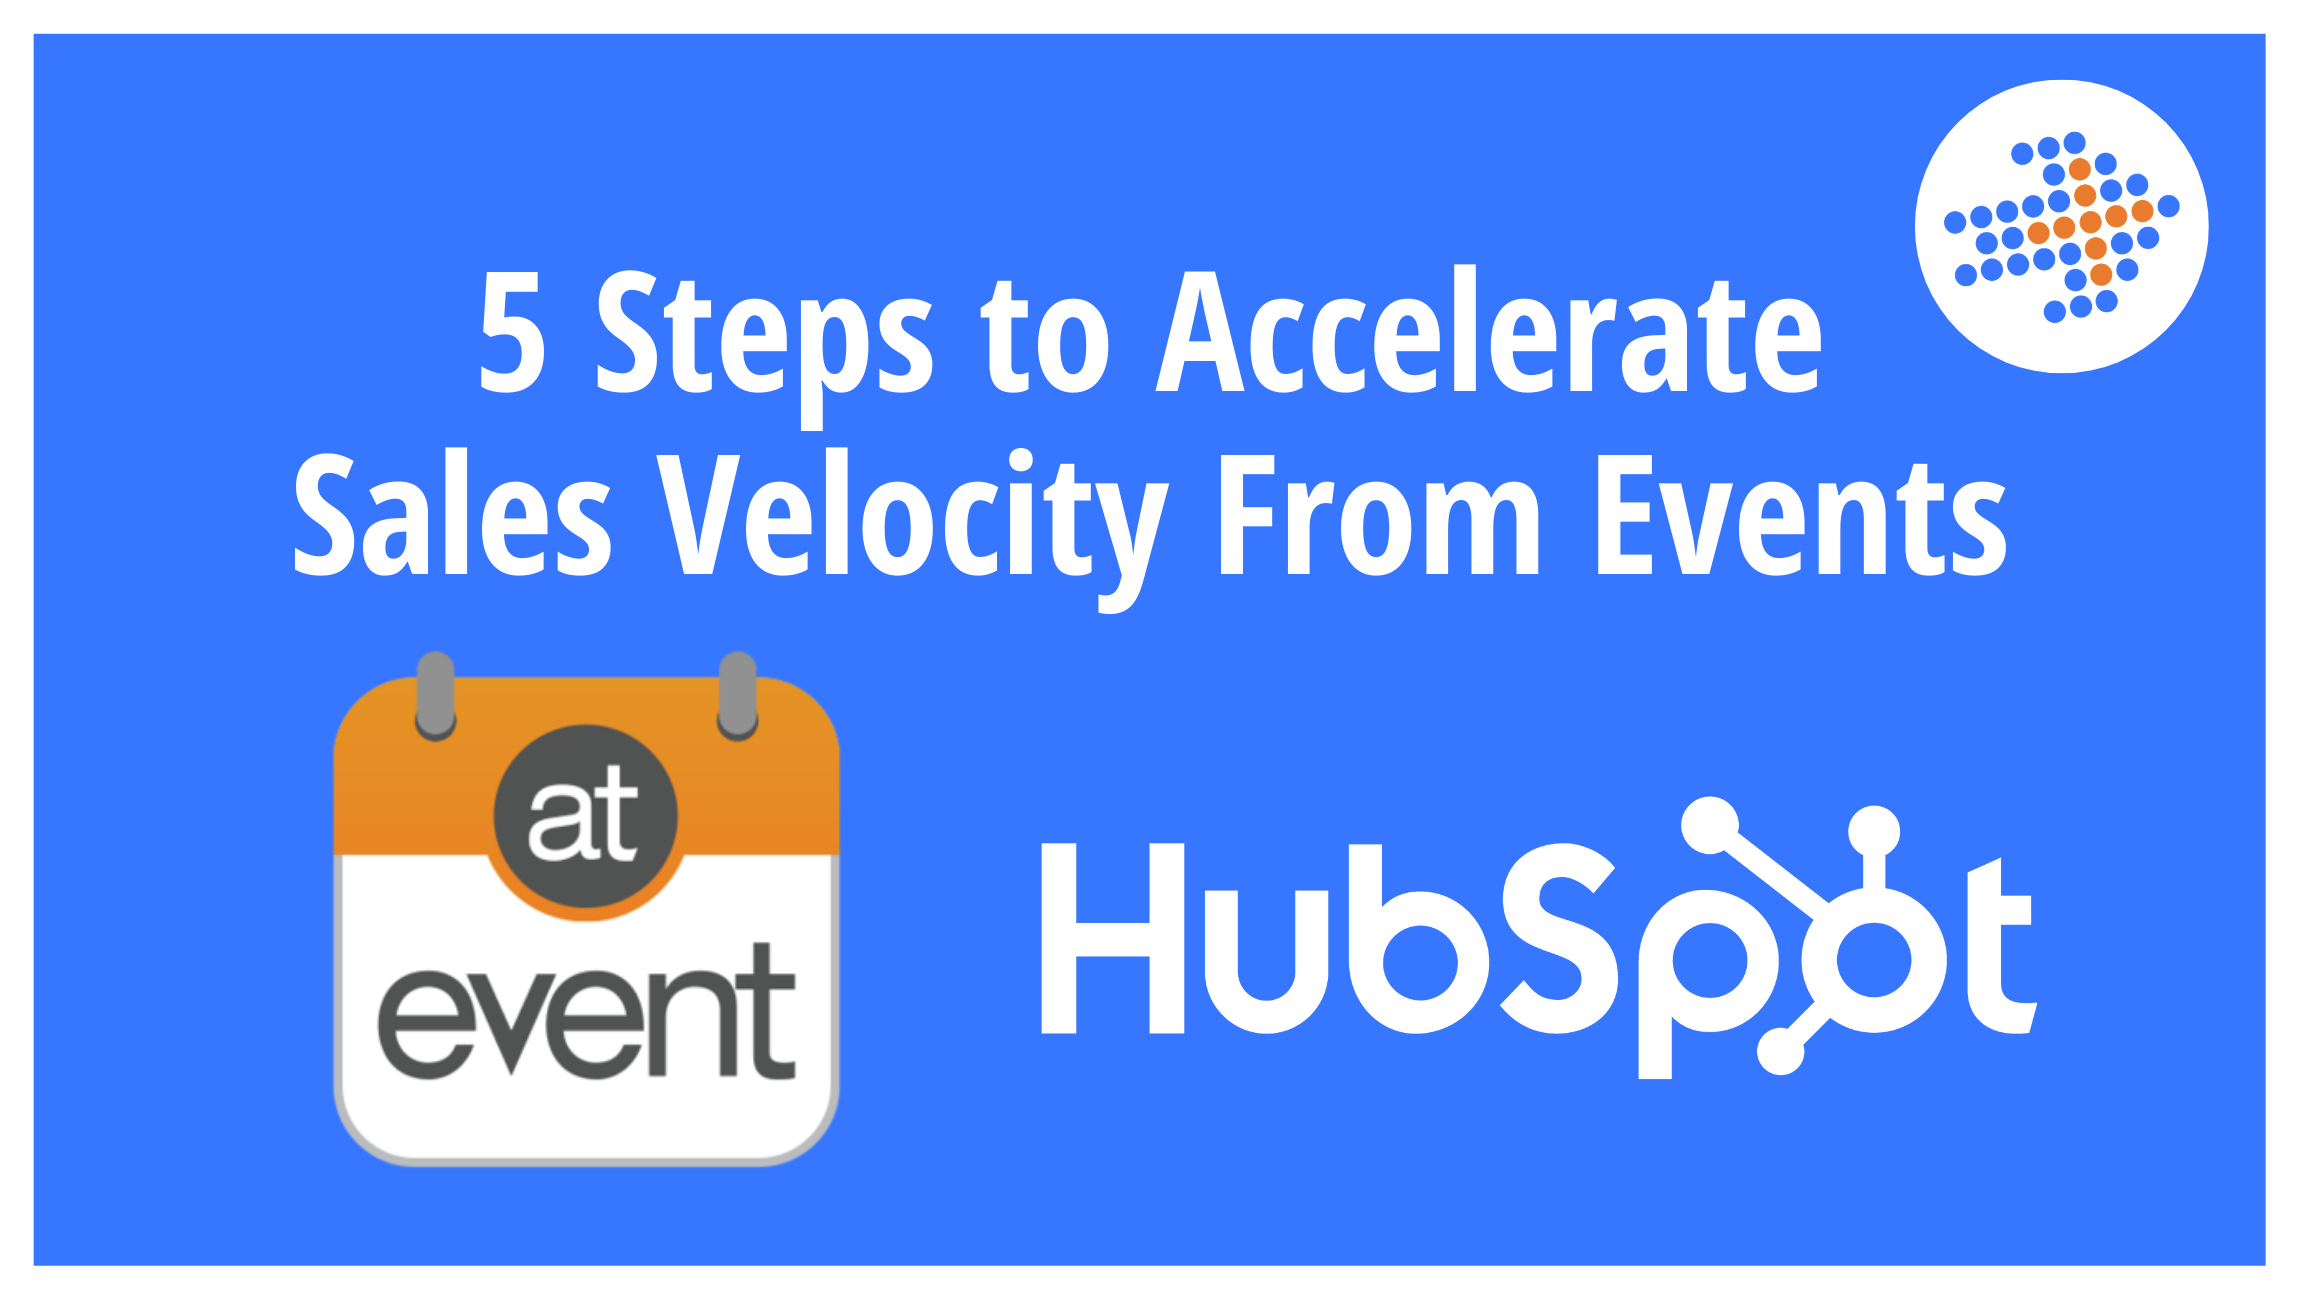 Events and HubSpot